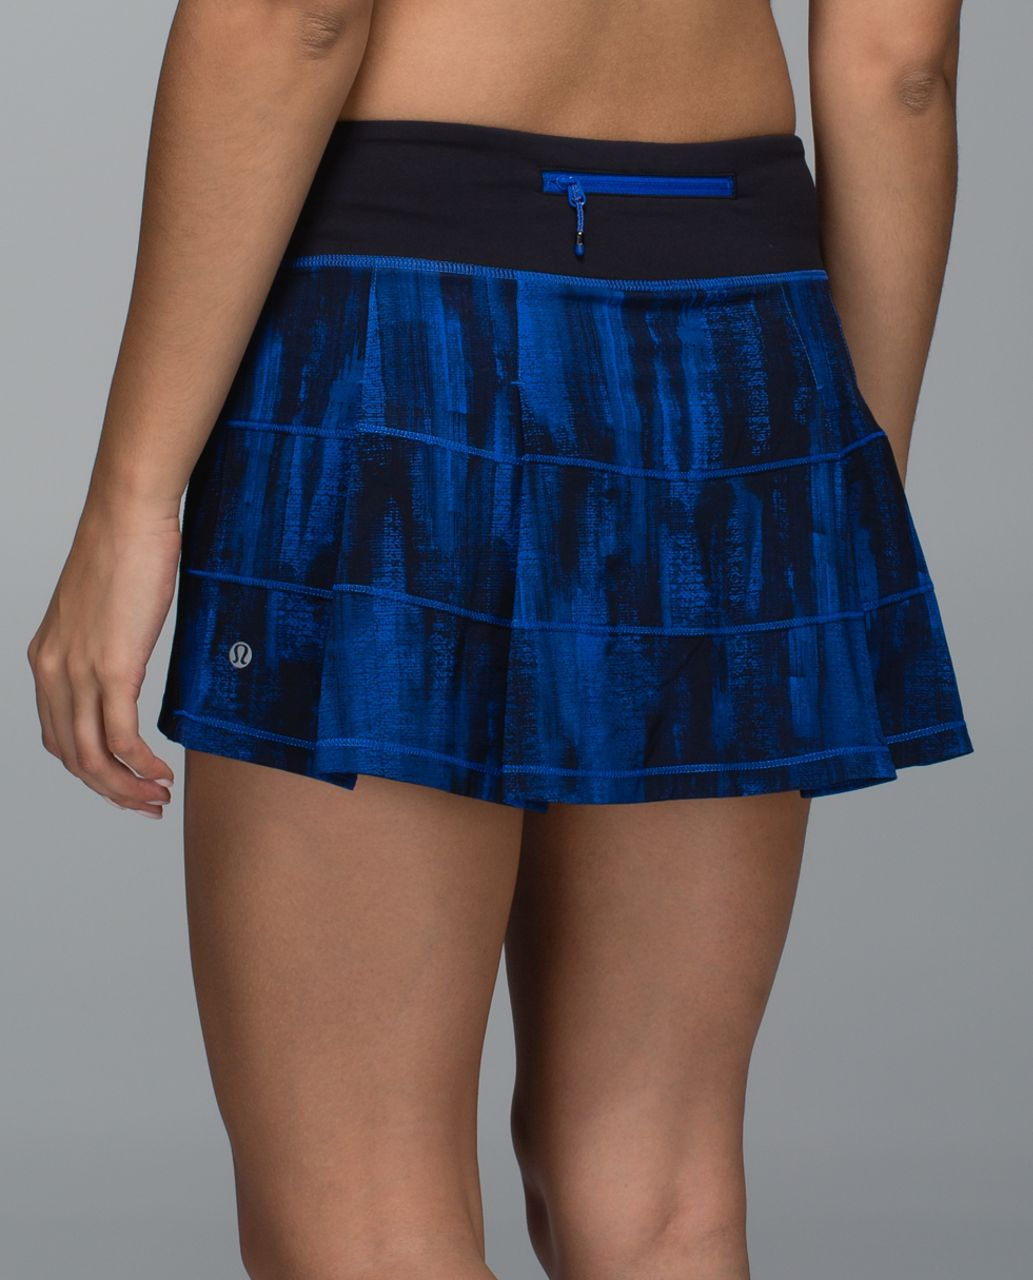 Lululemon Pace Rival Skirt II *4-way Stretch (Regular) - Nightsky White Harbor Blue / Black